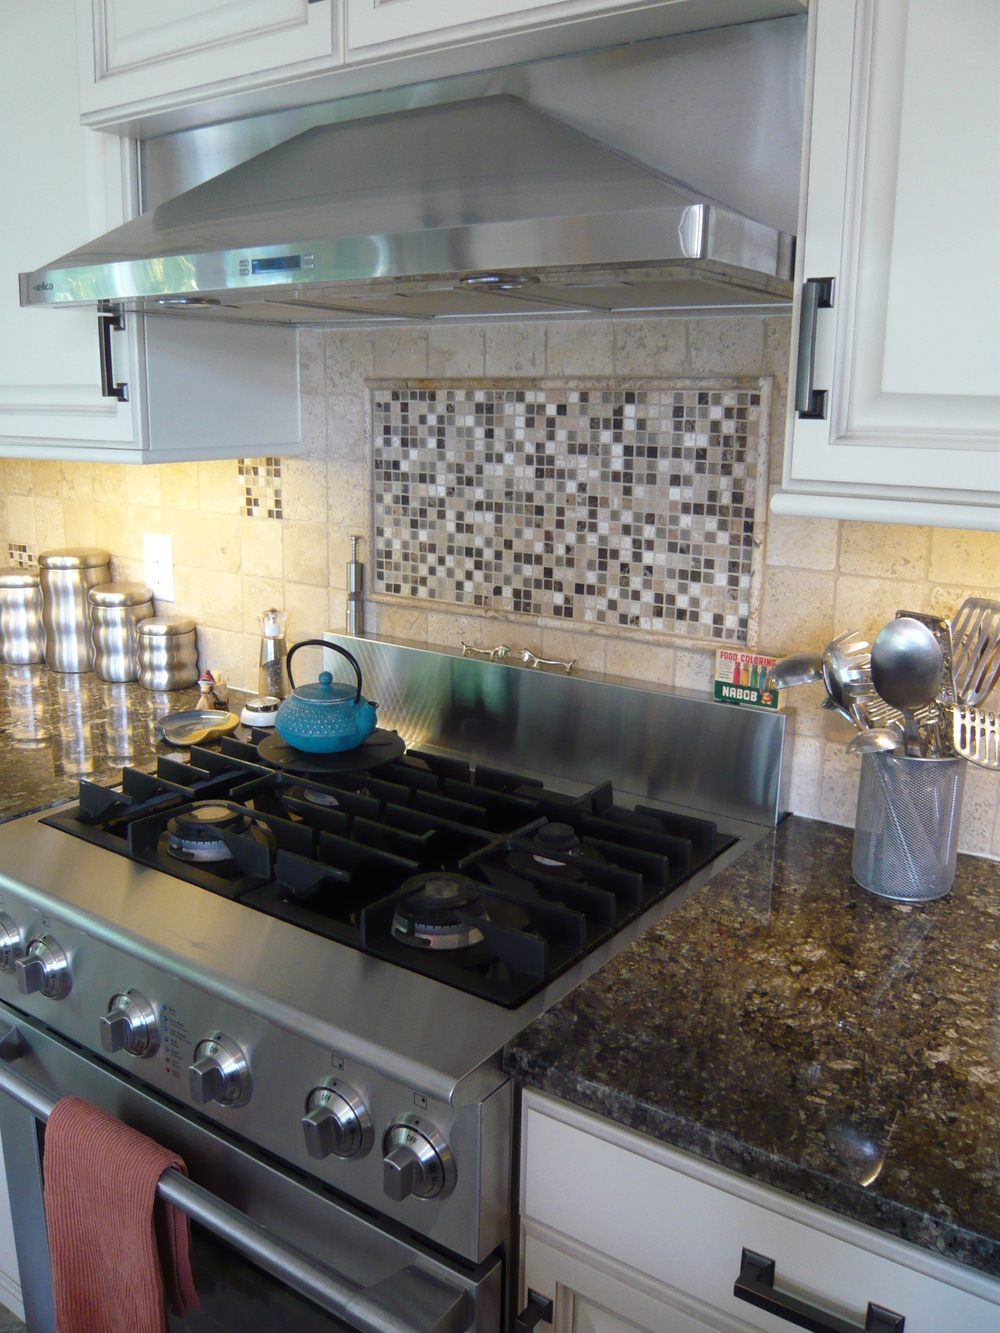 White Cabinets Stainless Steel Stove Hood Fan